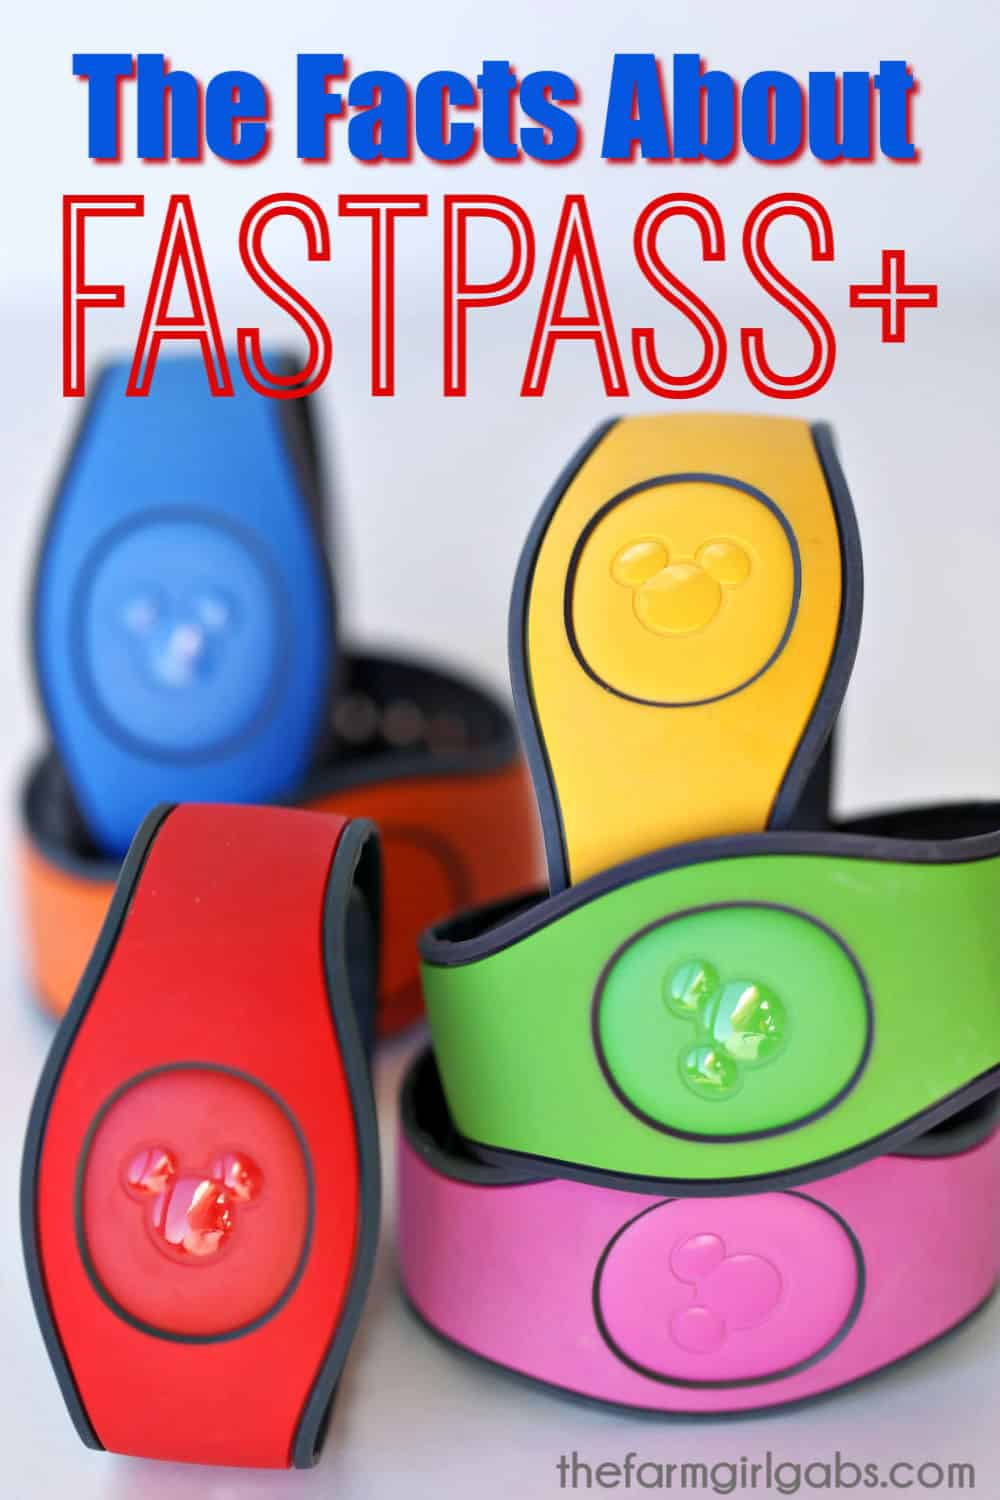 Planning a Walt Disney World Vacation? Then you need some Fastpass reservations. Here is everything You Need To Know About Fastpass+ at Walt Disney World. #WaltDisneyWorld #Fastpass